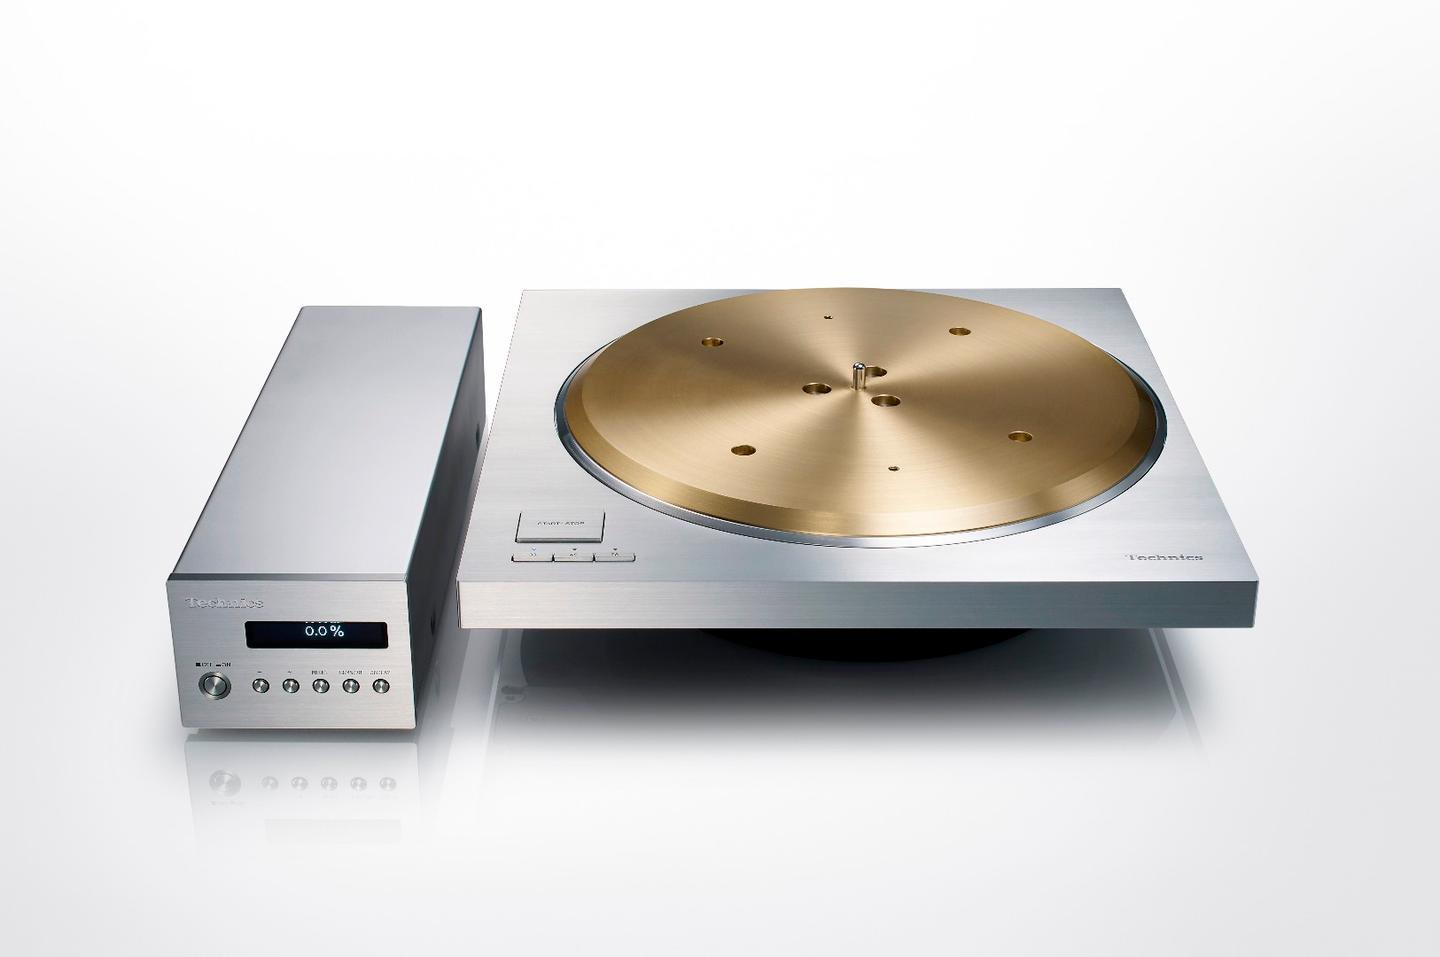 To keep noise to a minimum, the SP-10R's control/power unit has been separated from the turntable unit